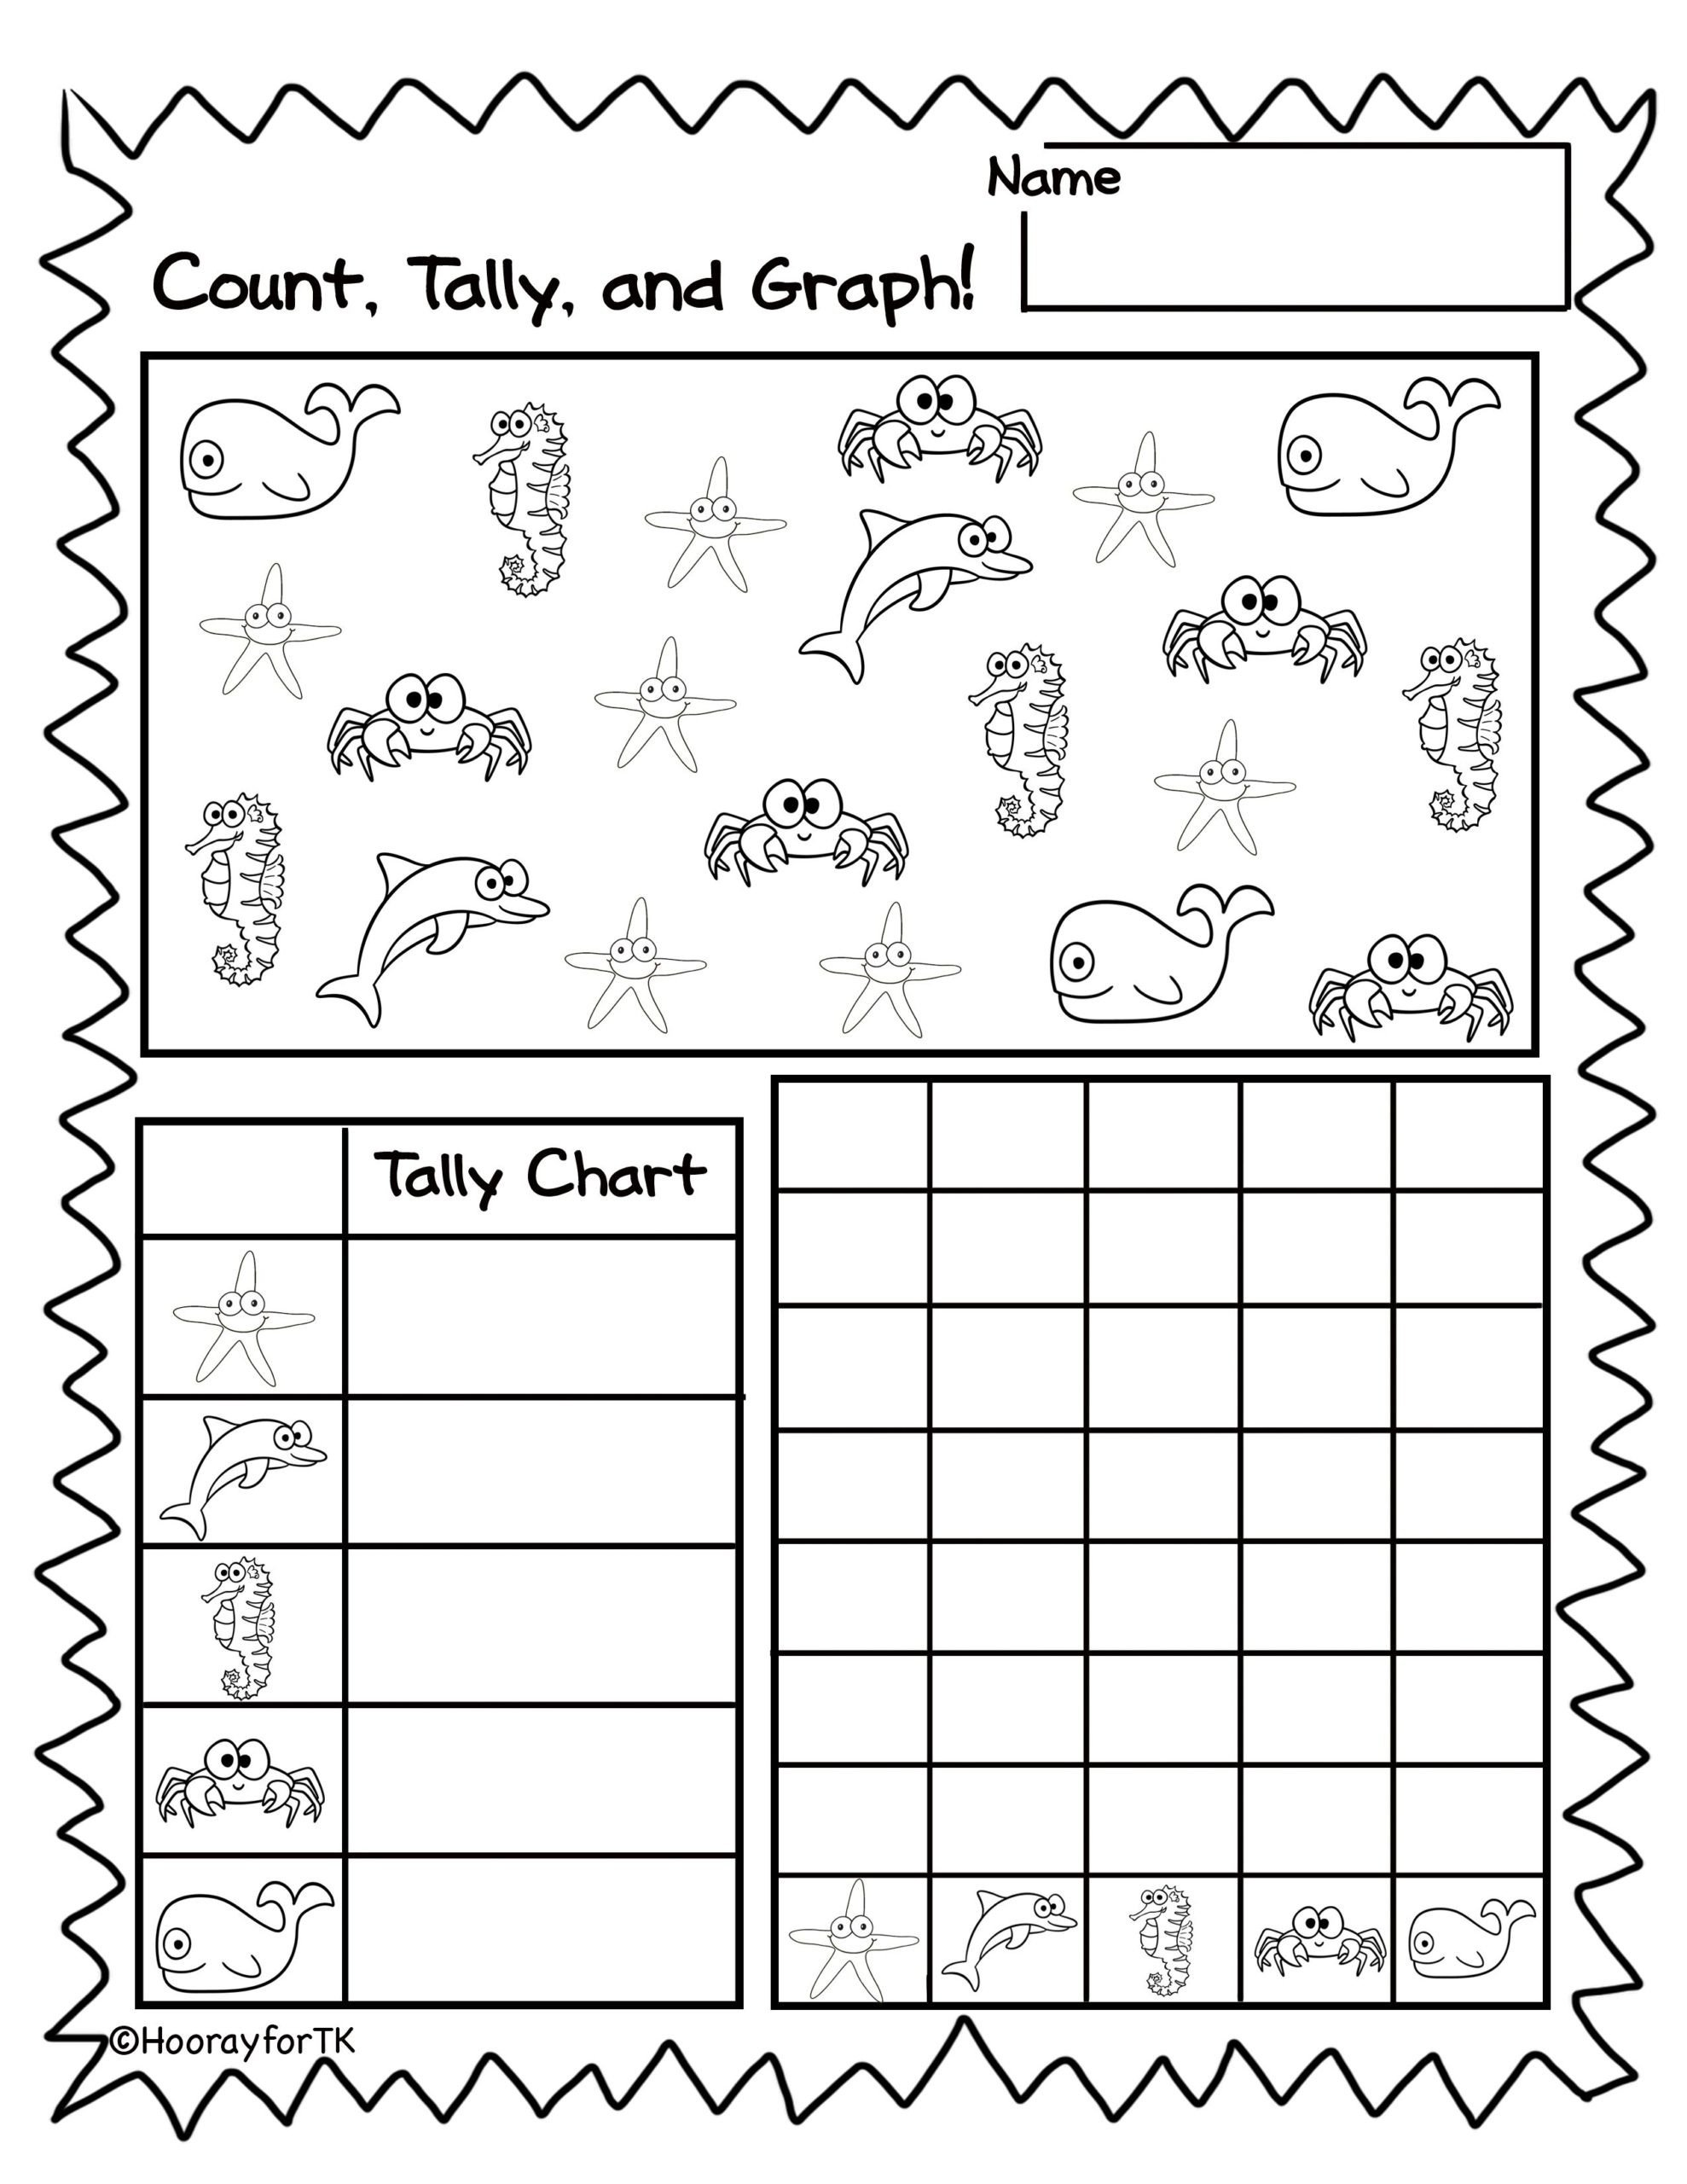 Computer Worksheet for Kindergarten Worksheet Creative Writing for Kindergarten Worksheets